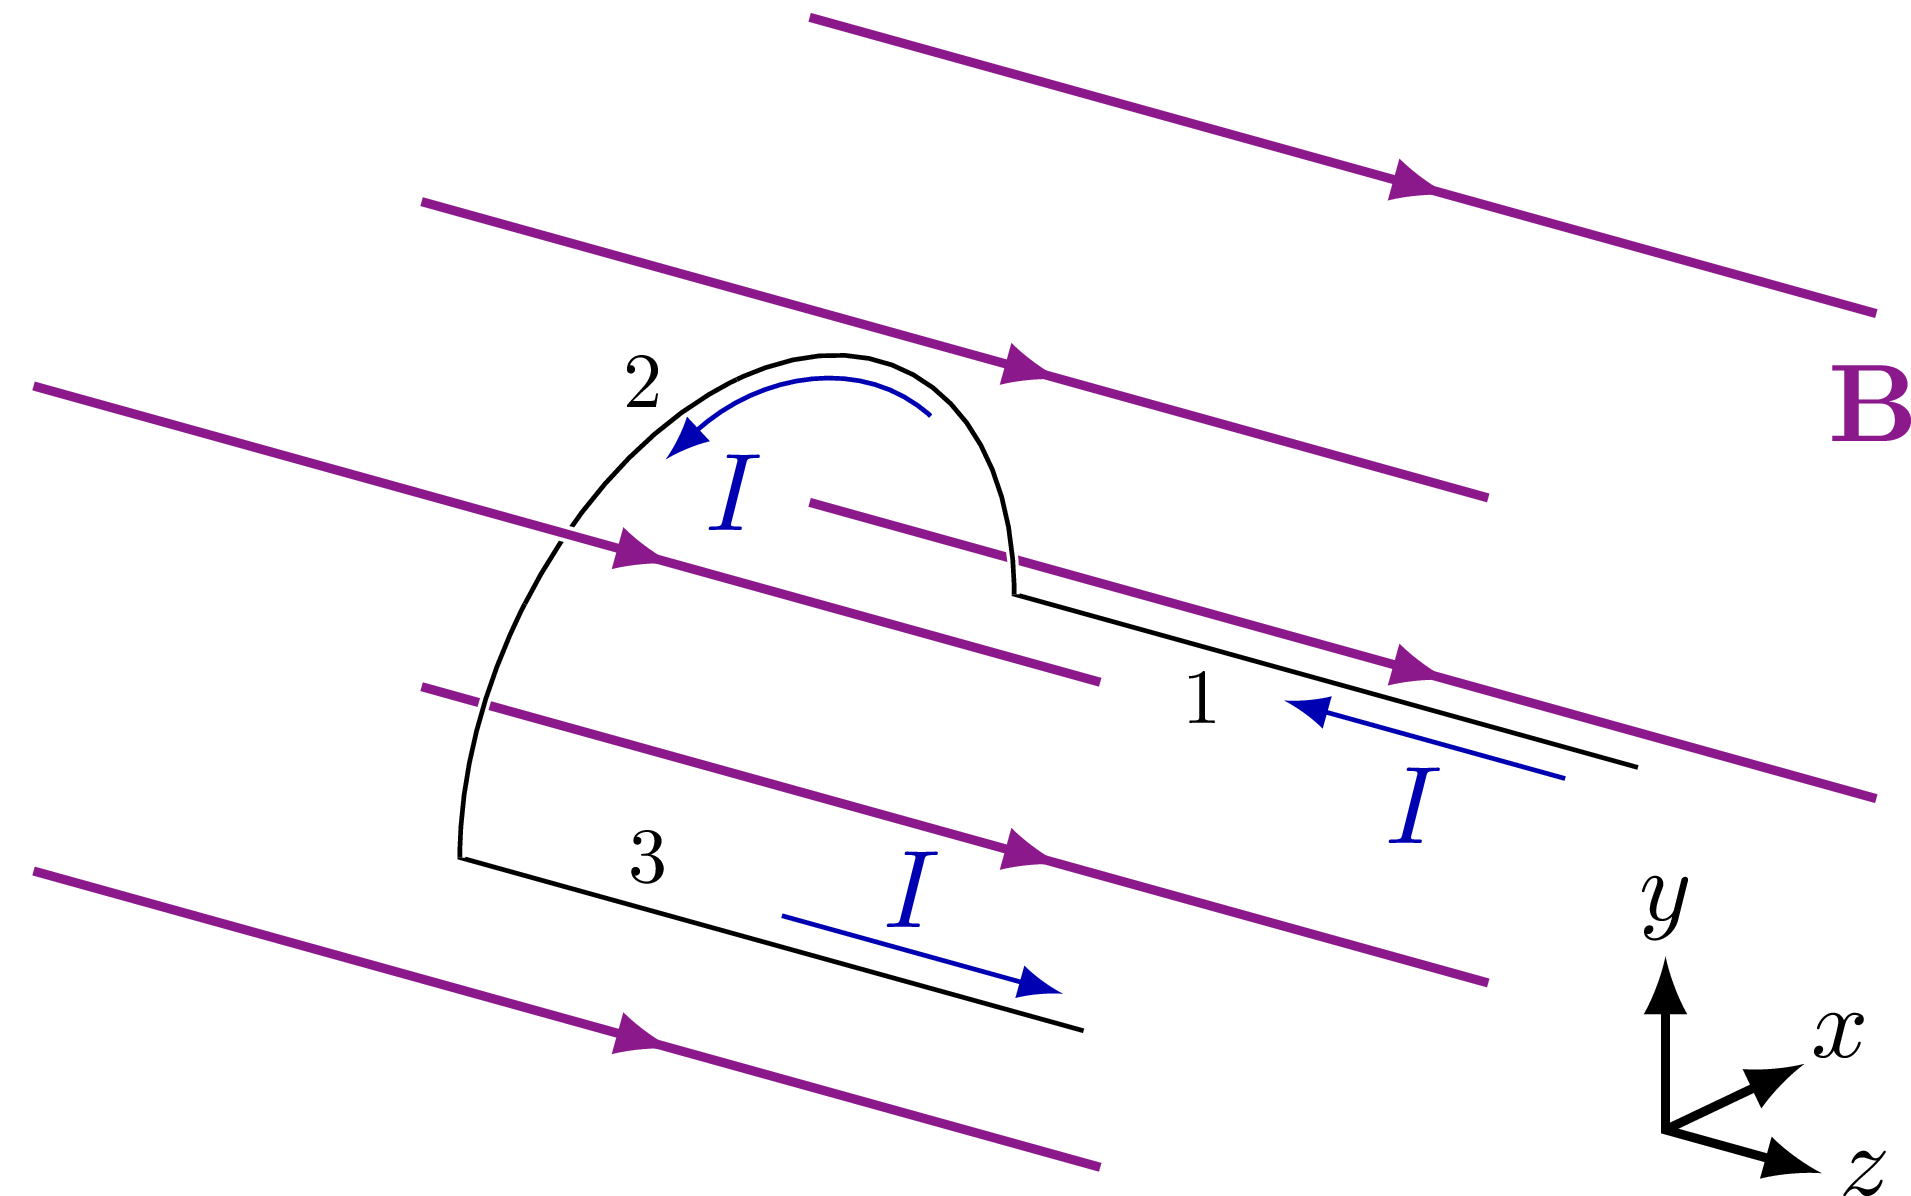 magnetic_force_current-002.png